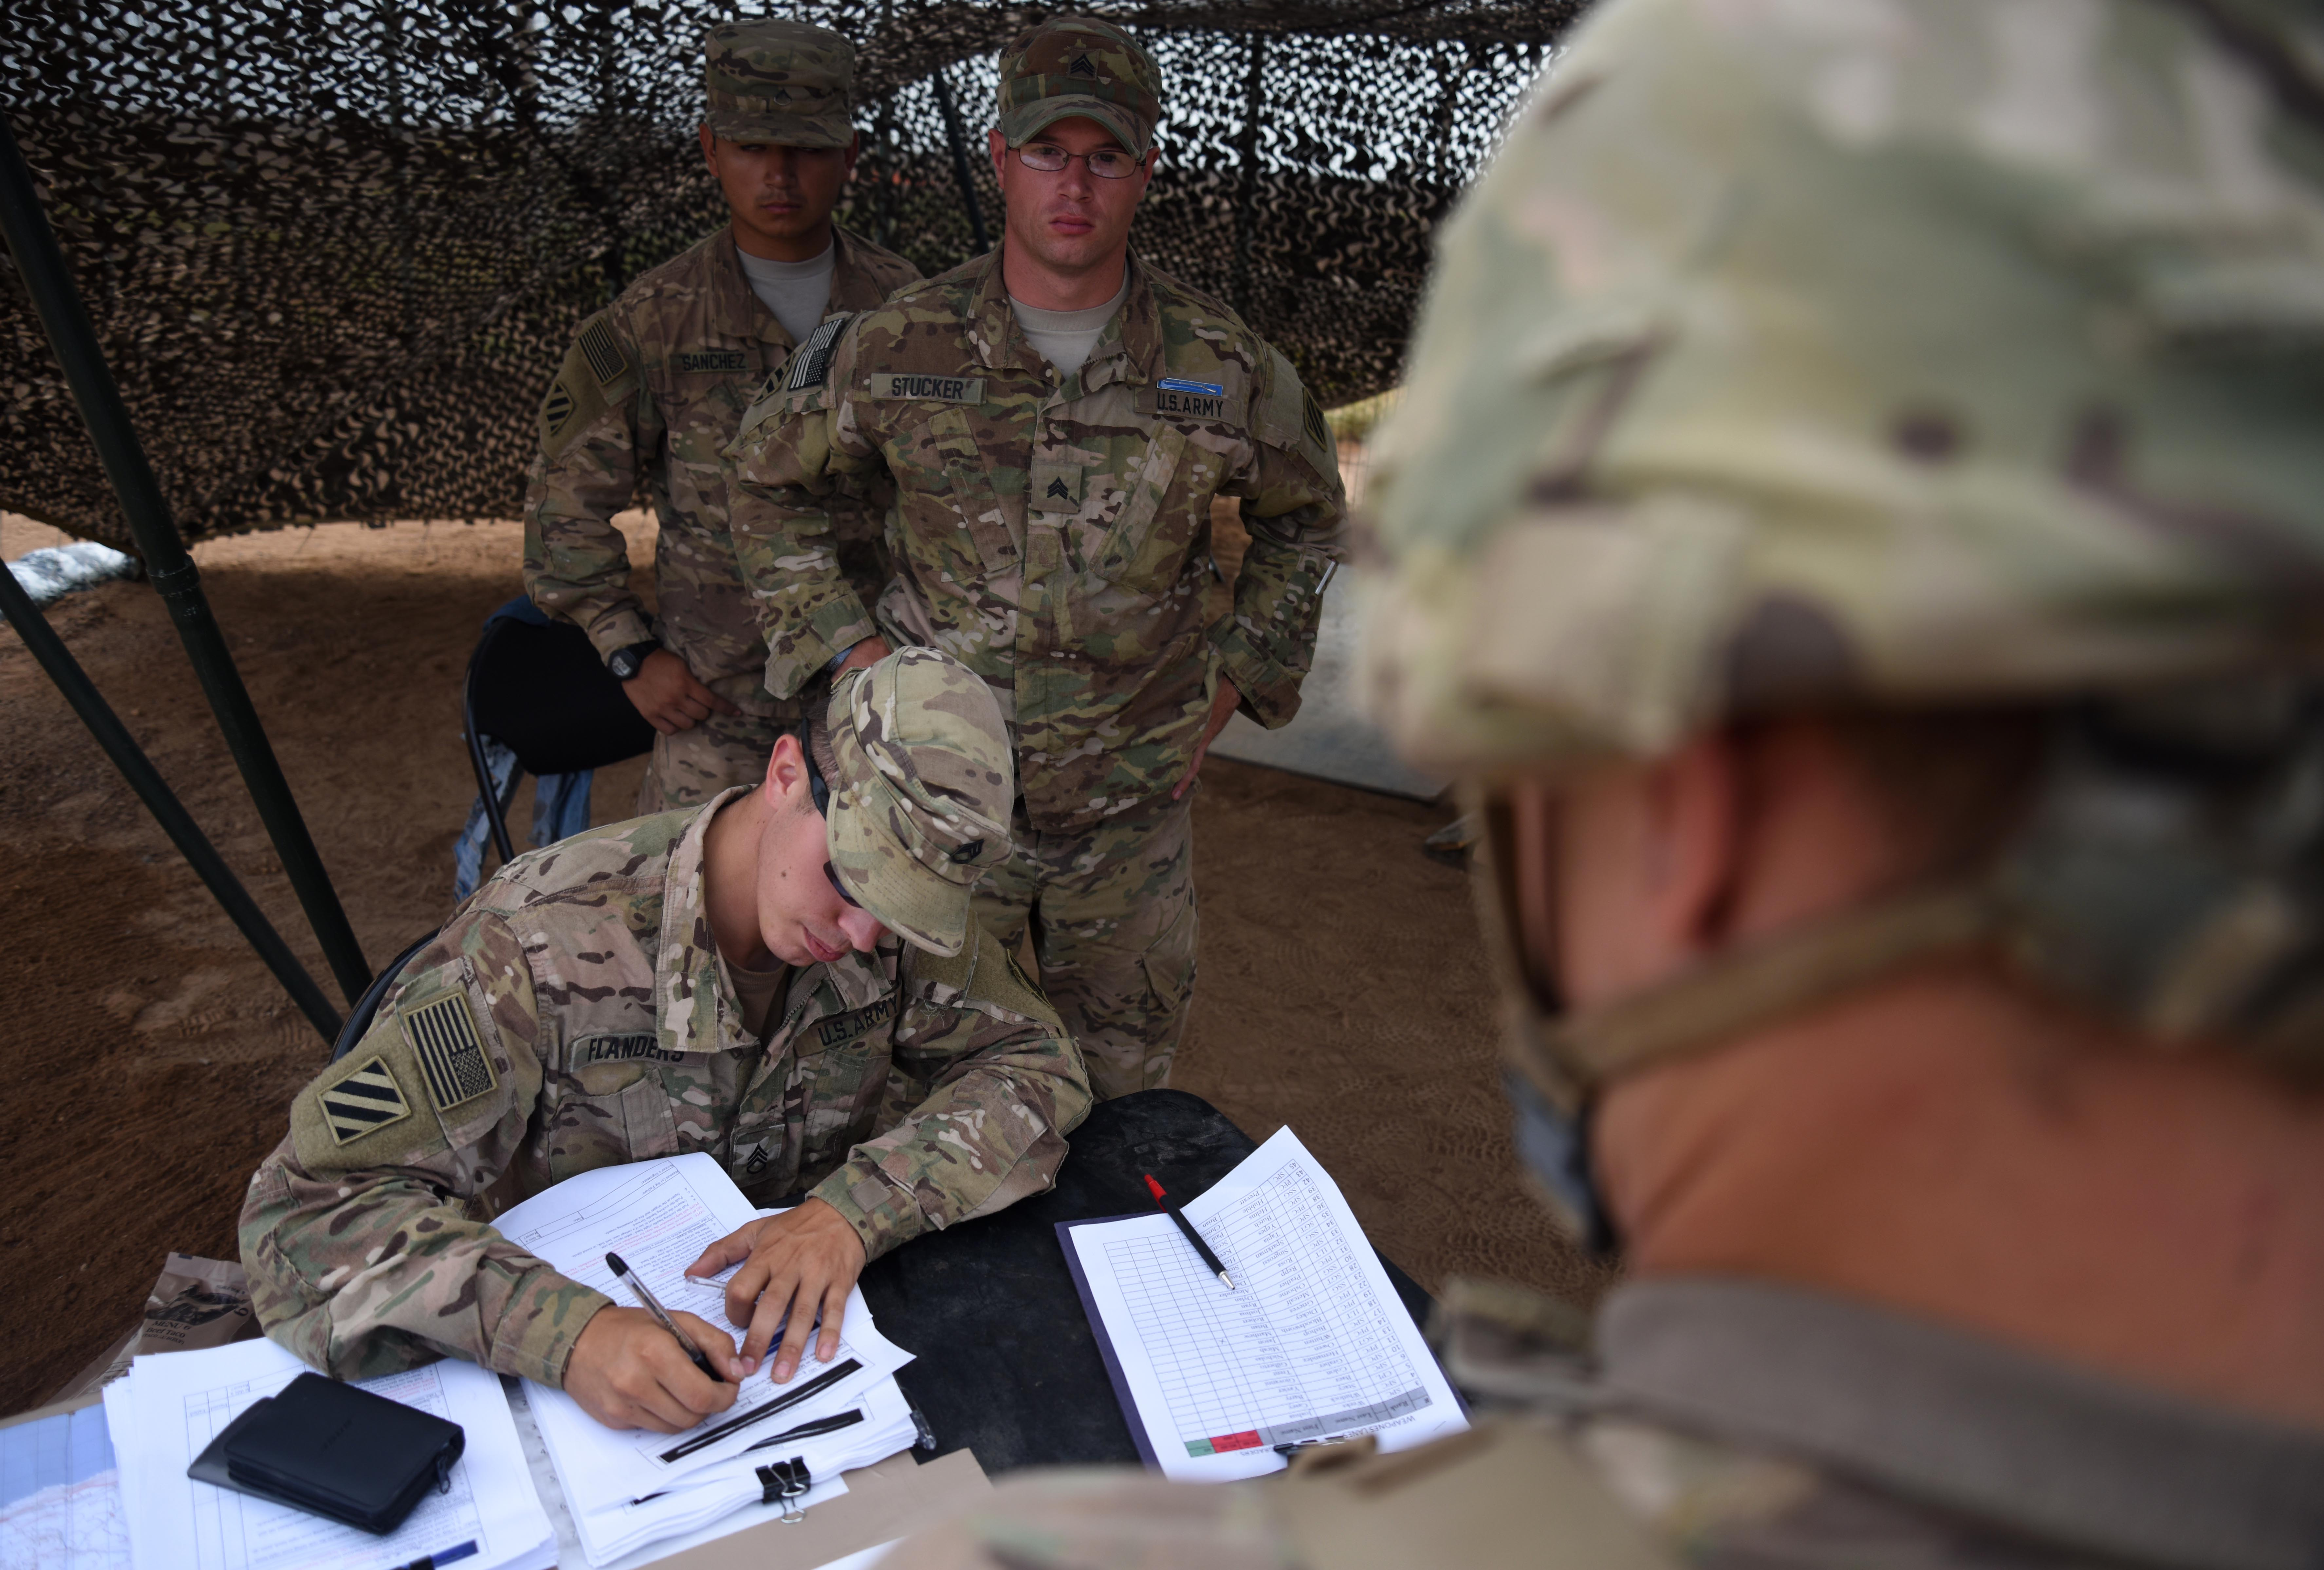 U.S. Army Expert Infantry Badge testing cadres accept a candidate for testing March 29, 2016, during the weapons portion of the EIB course at Camp Lemonnier, Djibouti. Authorities from EIB testing headquarters at Fort Benning, Ga., travelled here to make sure the course met the very high standard of every EIB test, and they approved the course, cadre and curriculum for the intense week of evaluations. (U.S. Air Force photo by Staff Sgt. Kate Thornton)